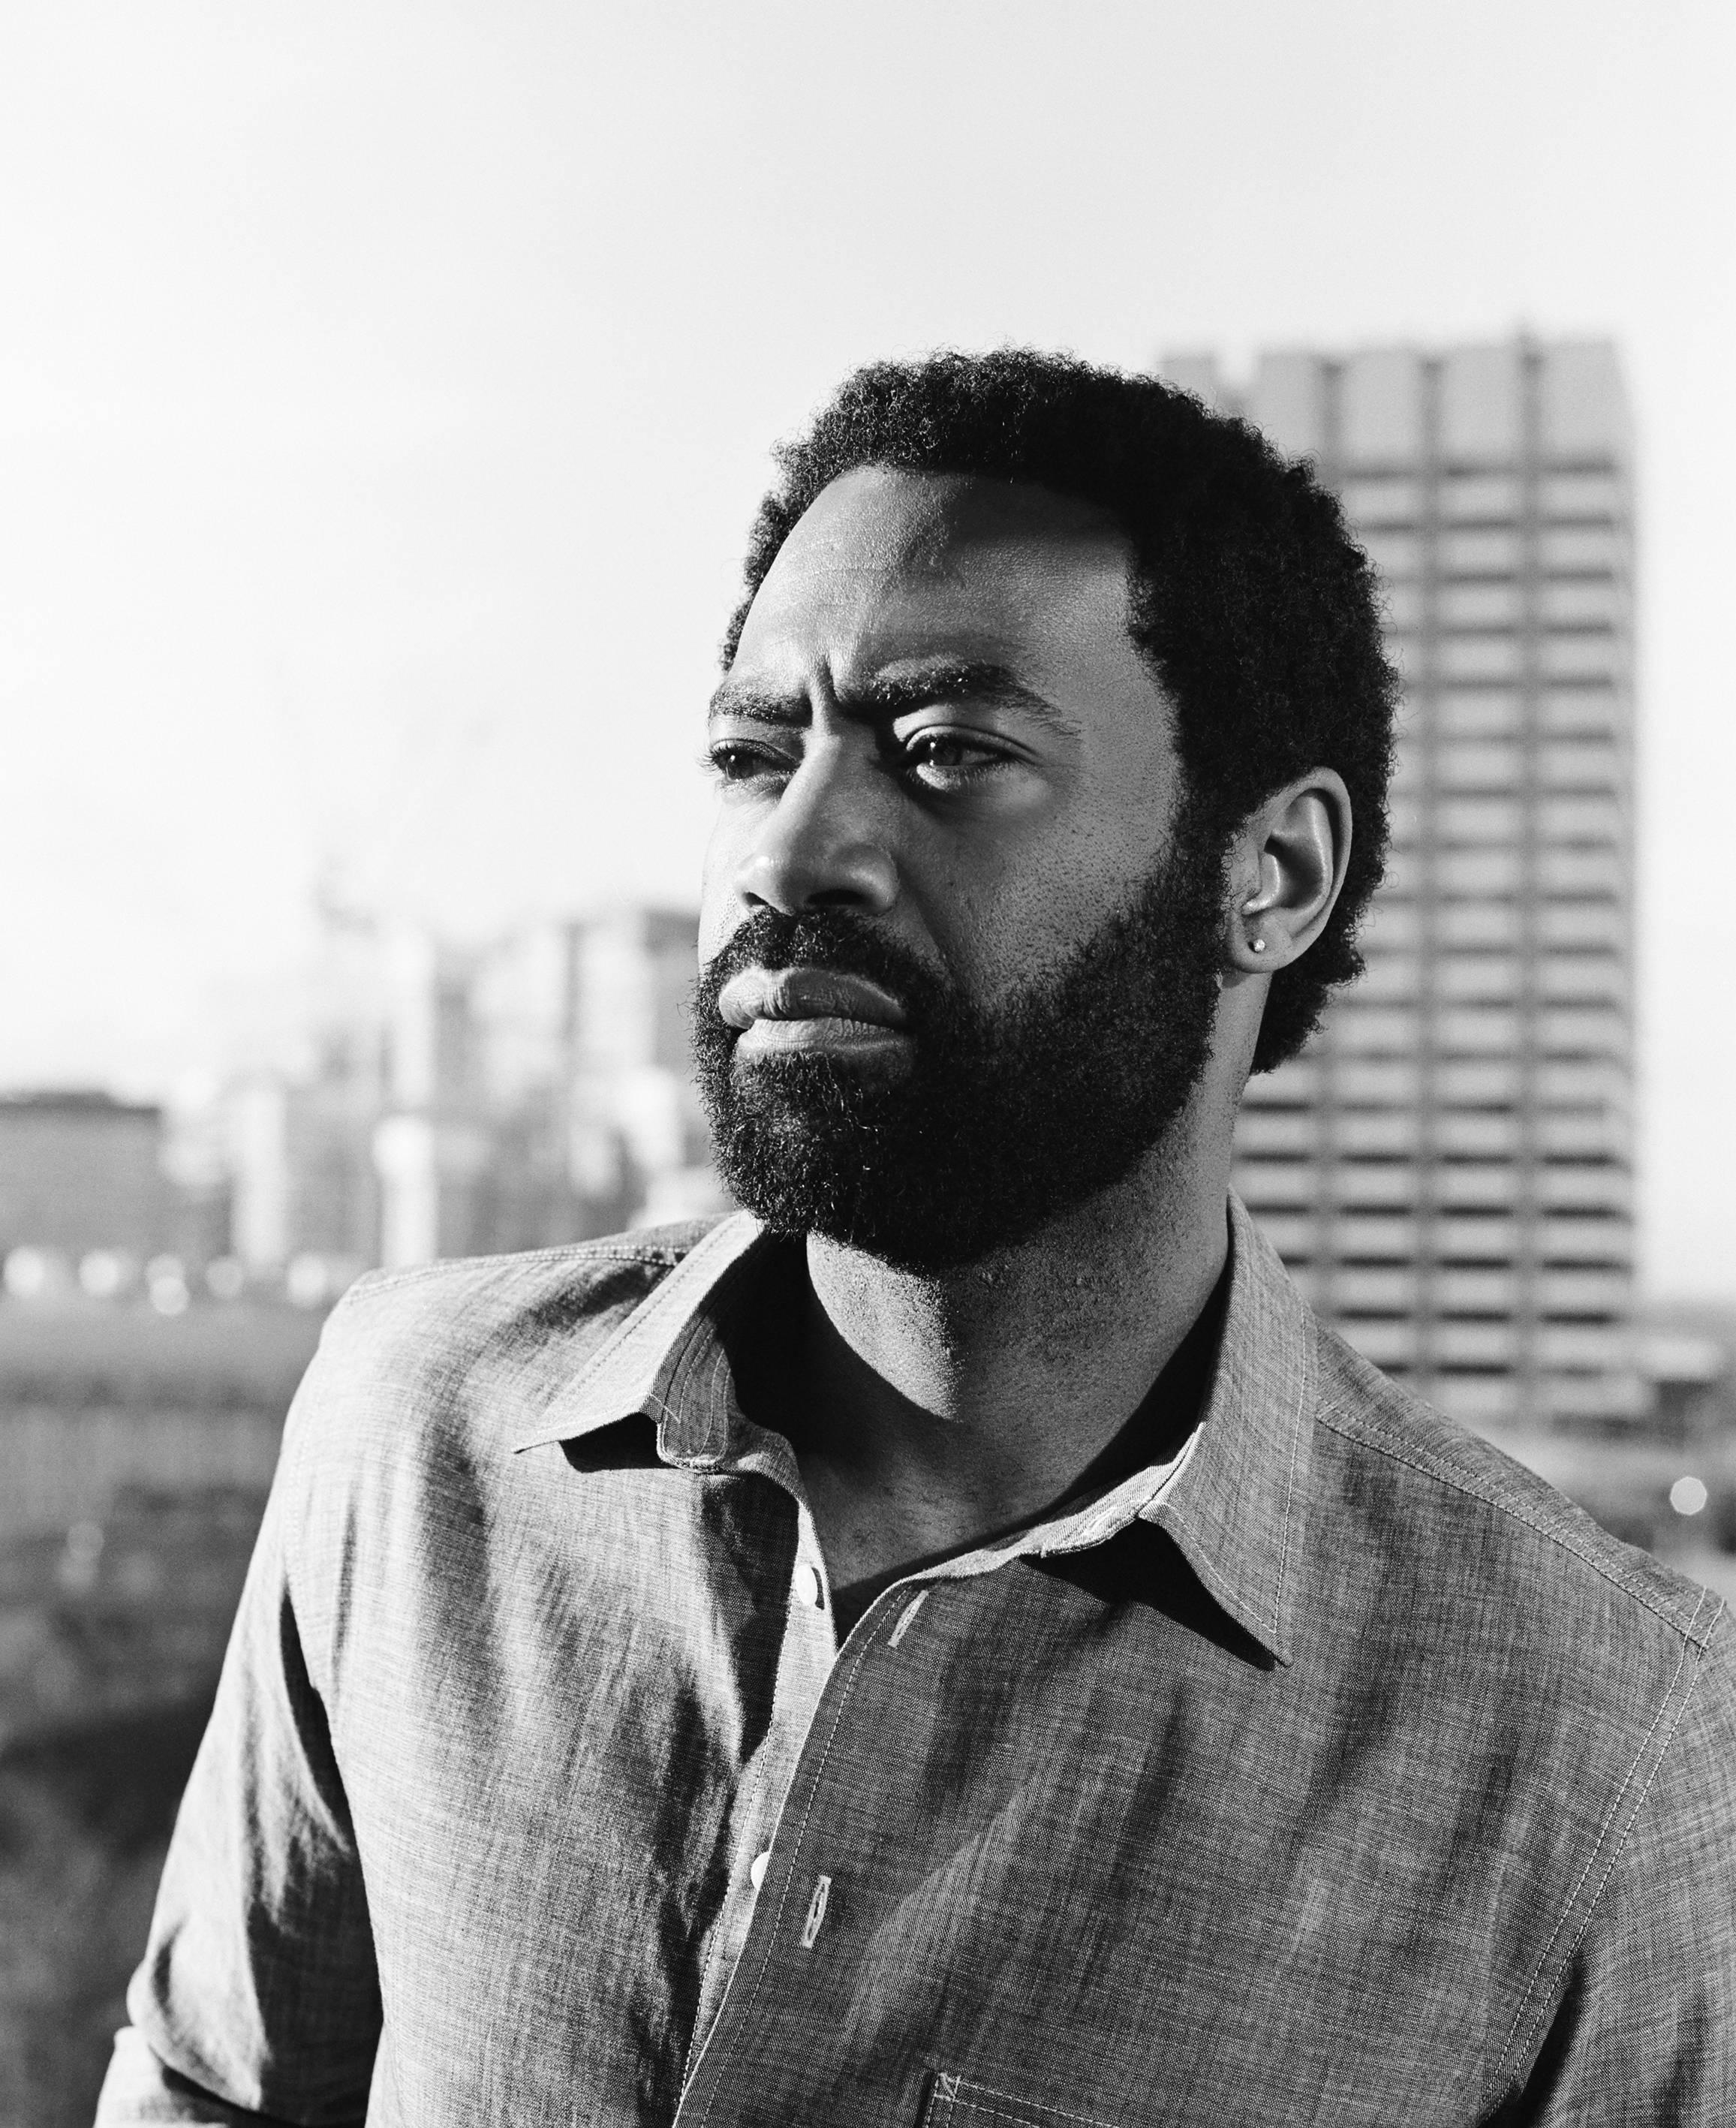 Nicholas Pinnock Contemporary Black and White Photography Limited Edition of 9